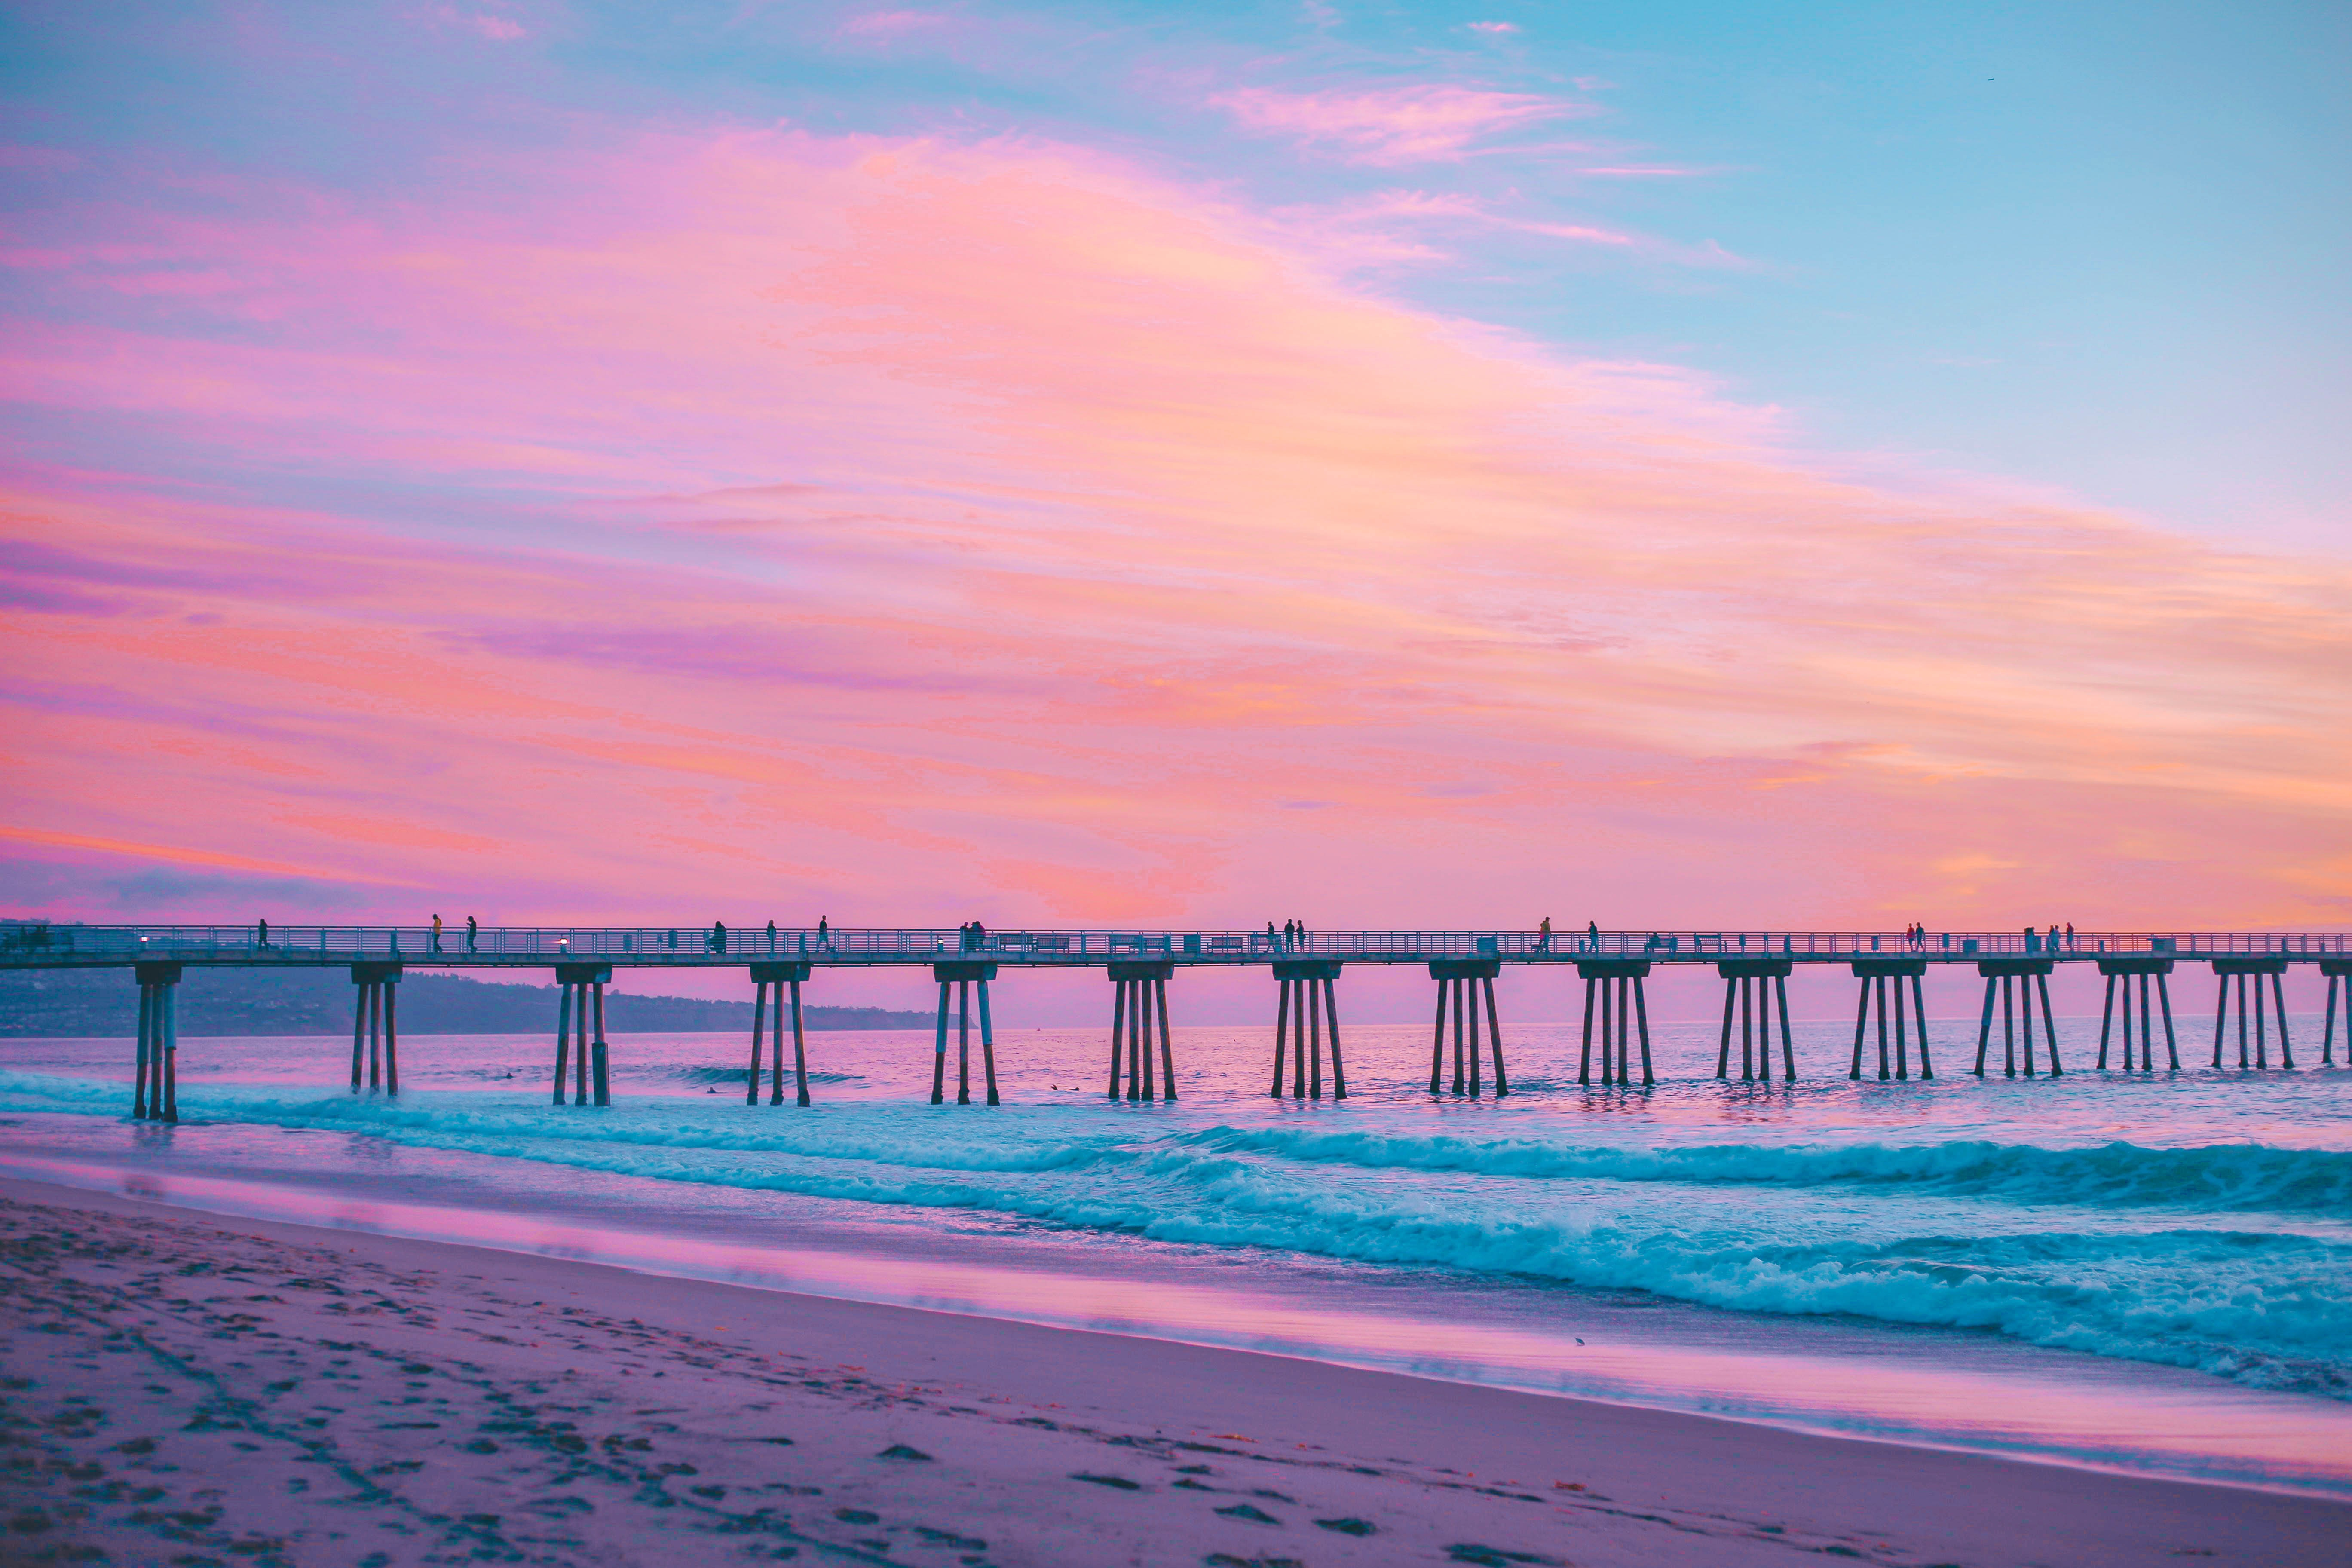 66586 download wallpaper Nature, Sea, Pink, Pier, Surf, California, Hermosa Beach, Hermosa Scourge screensavers and pictures for free